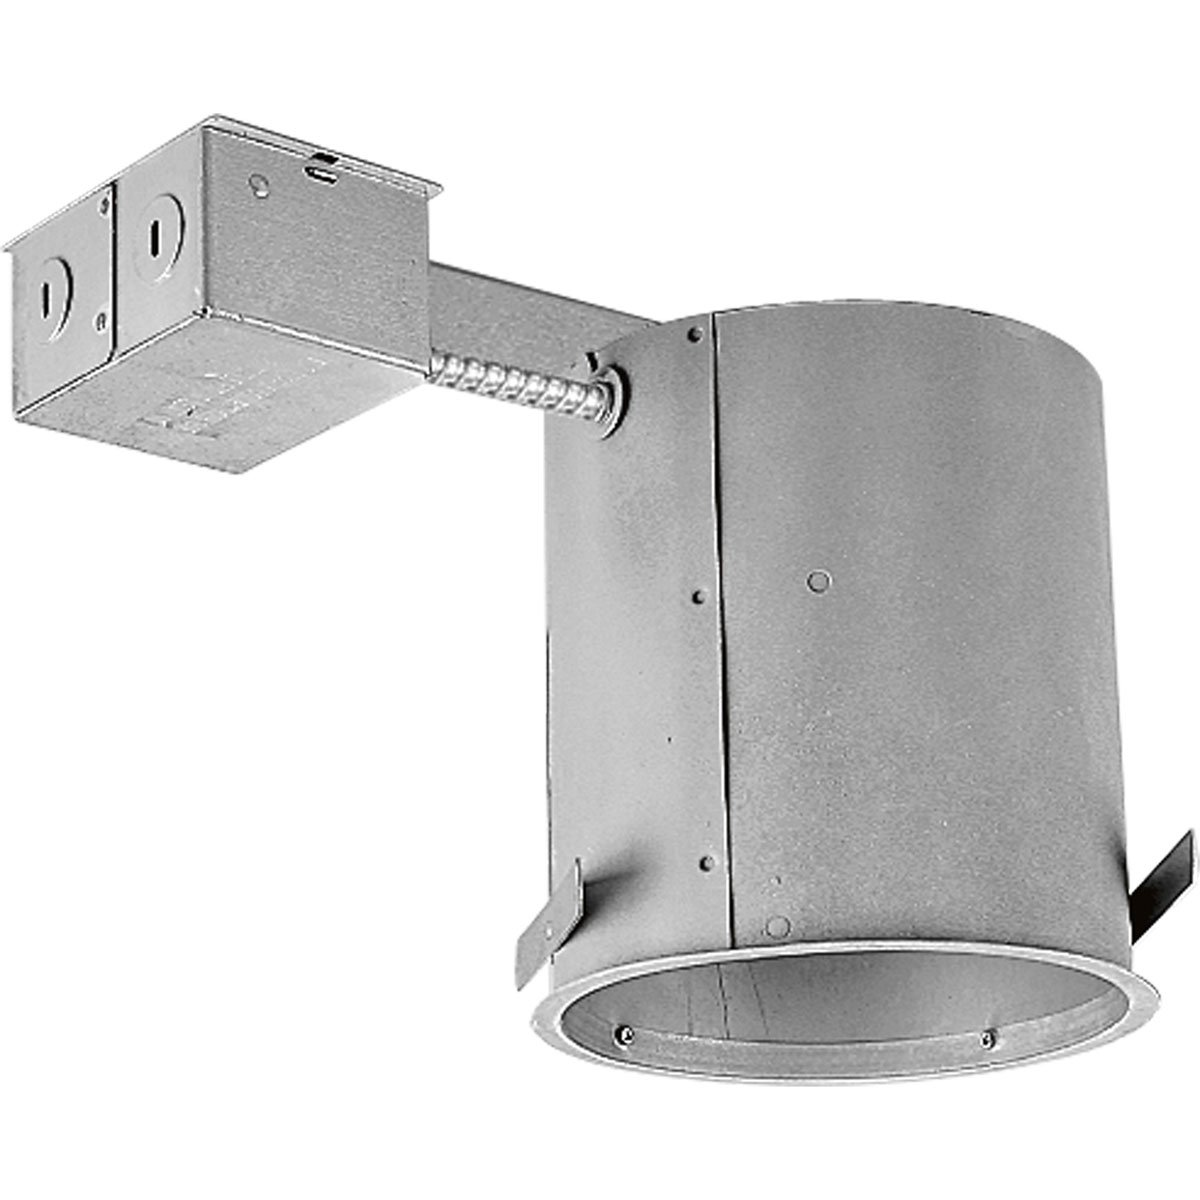 Progress Lighting 94187TG0 Remodel Recessed Lighting Housing for Use in Existing Ceilings